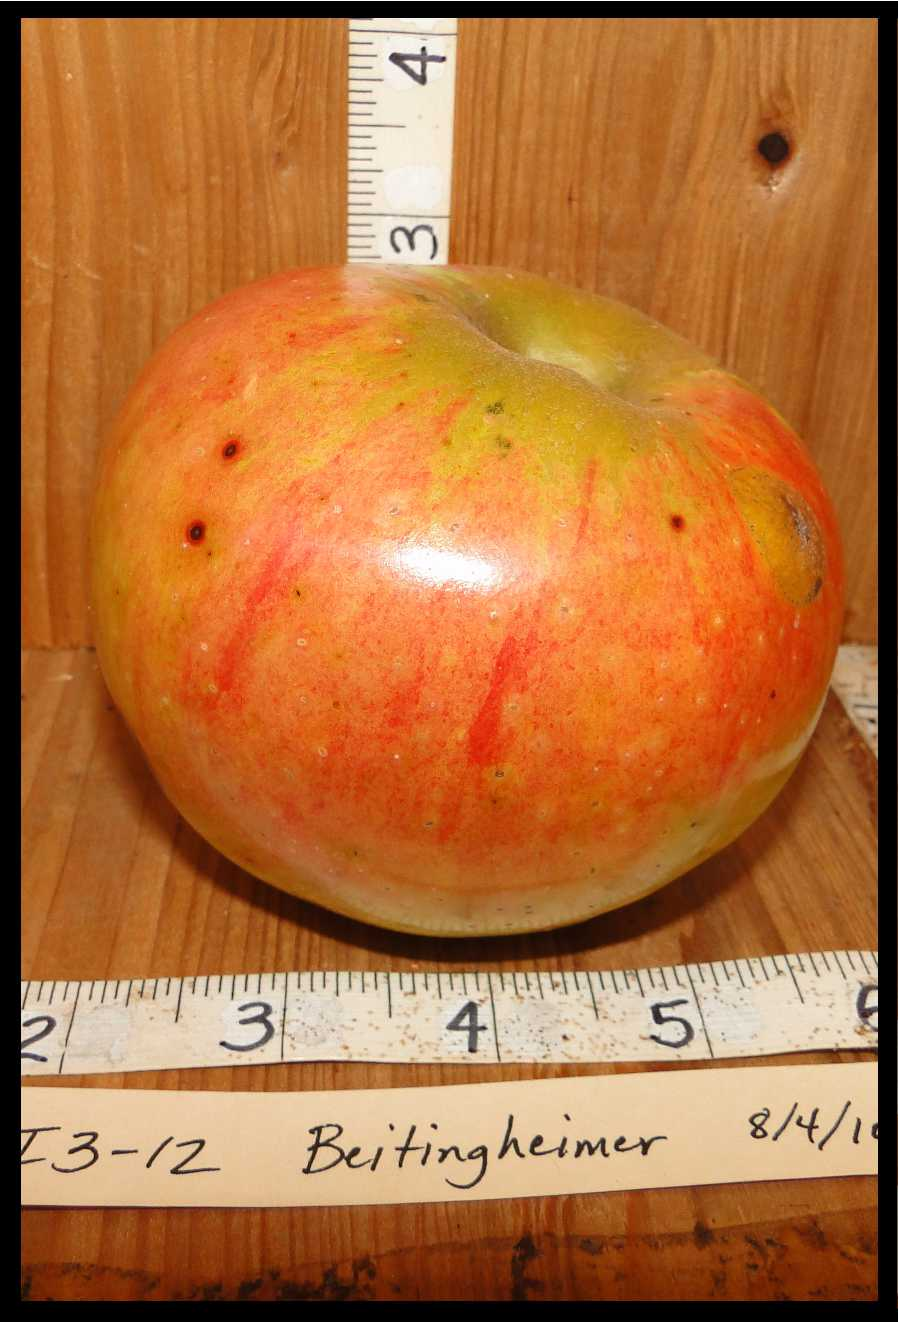 tannish apple with pink blush and darker red spots